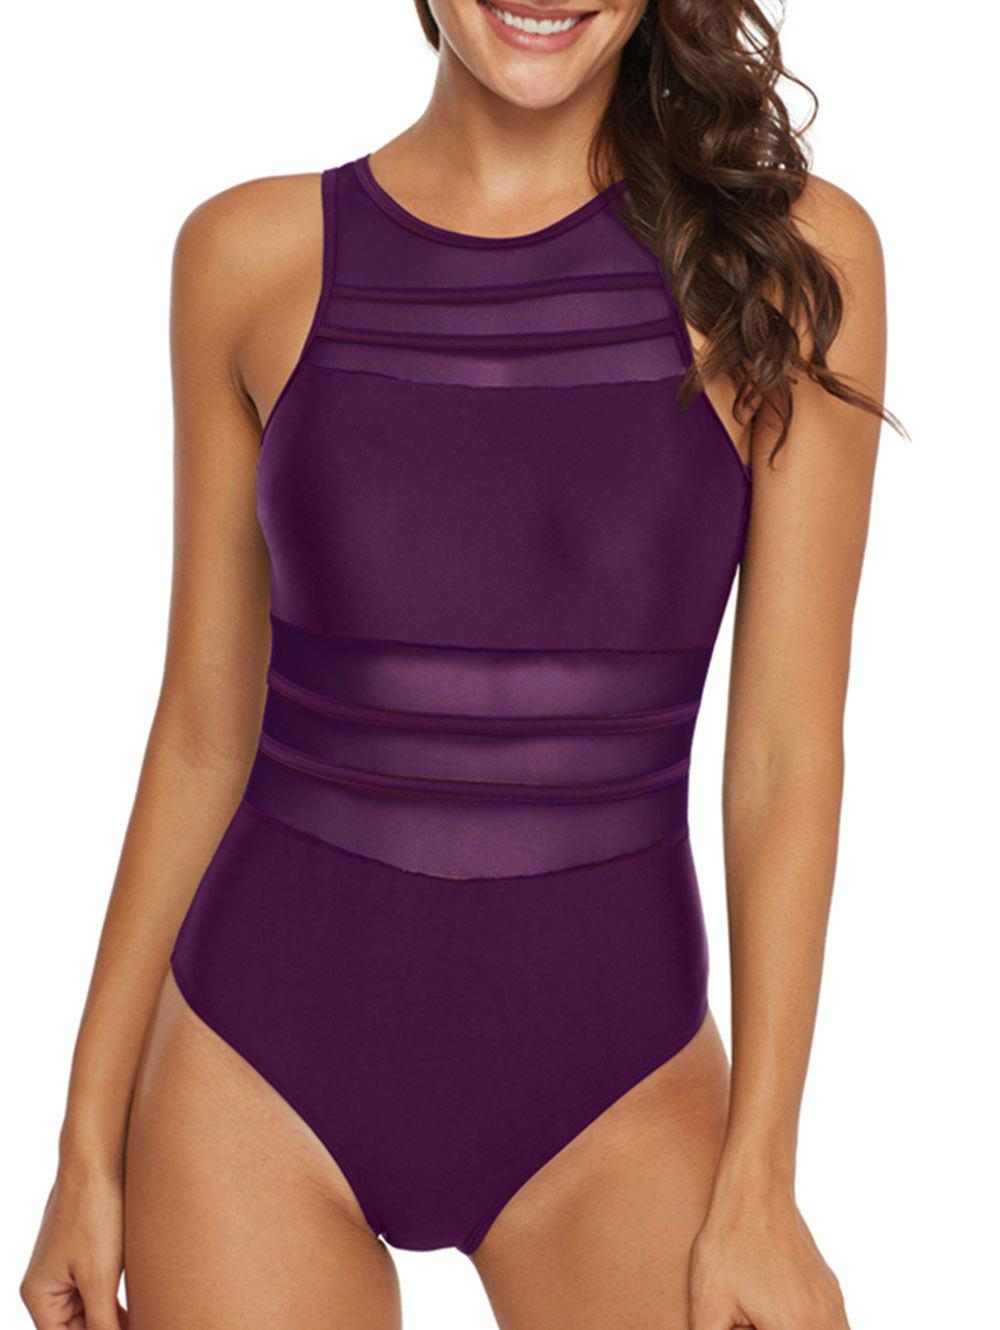 New Mesh Panel Sheer Cutout One-piece Swimsuit